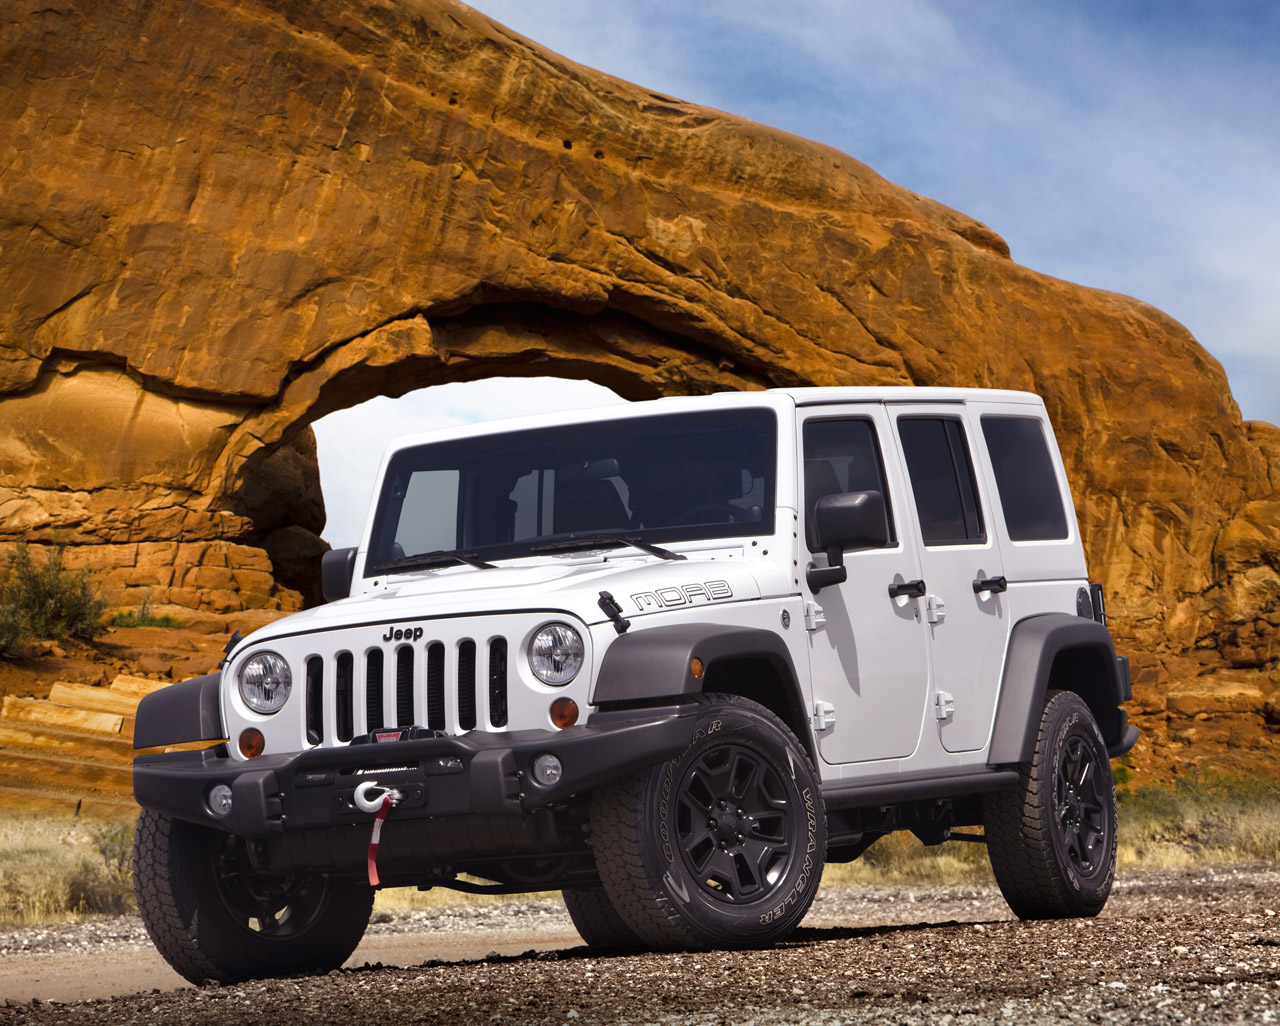 Jeep wrangler moab special edition